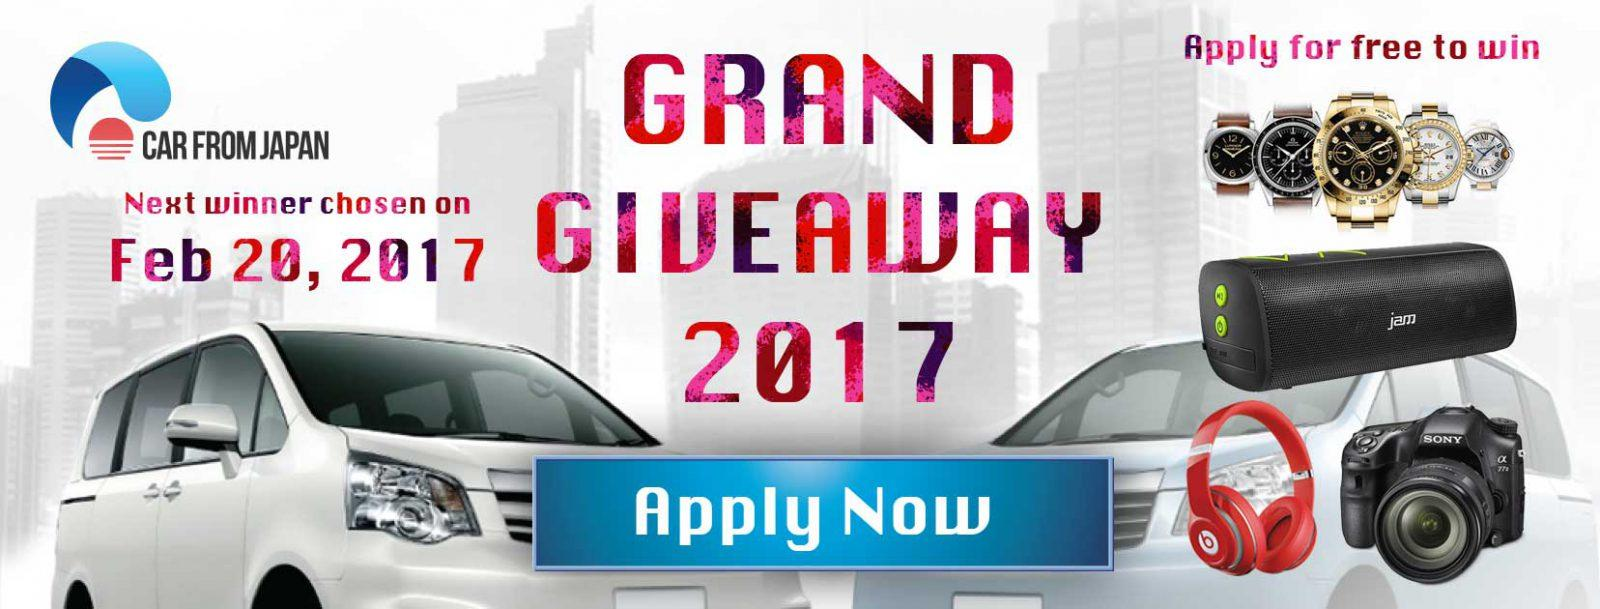 Car Giveaway 2017 >> Car Giveaway Campaign Is It Free Car Scam Or Real Promotion Car